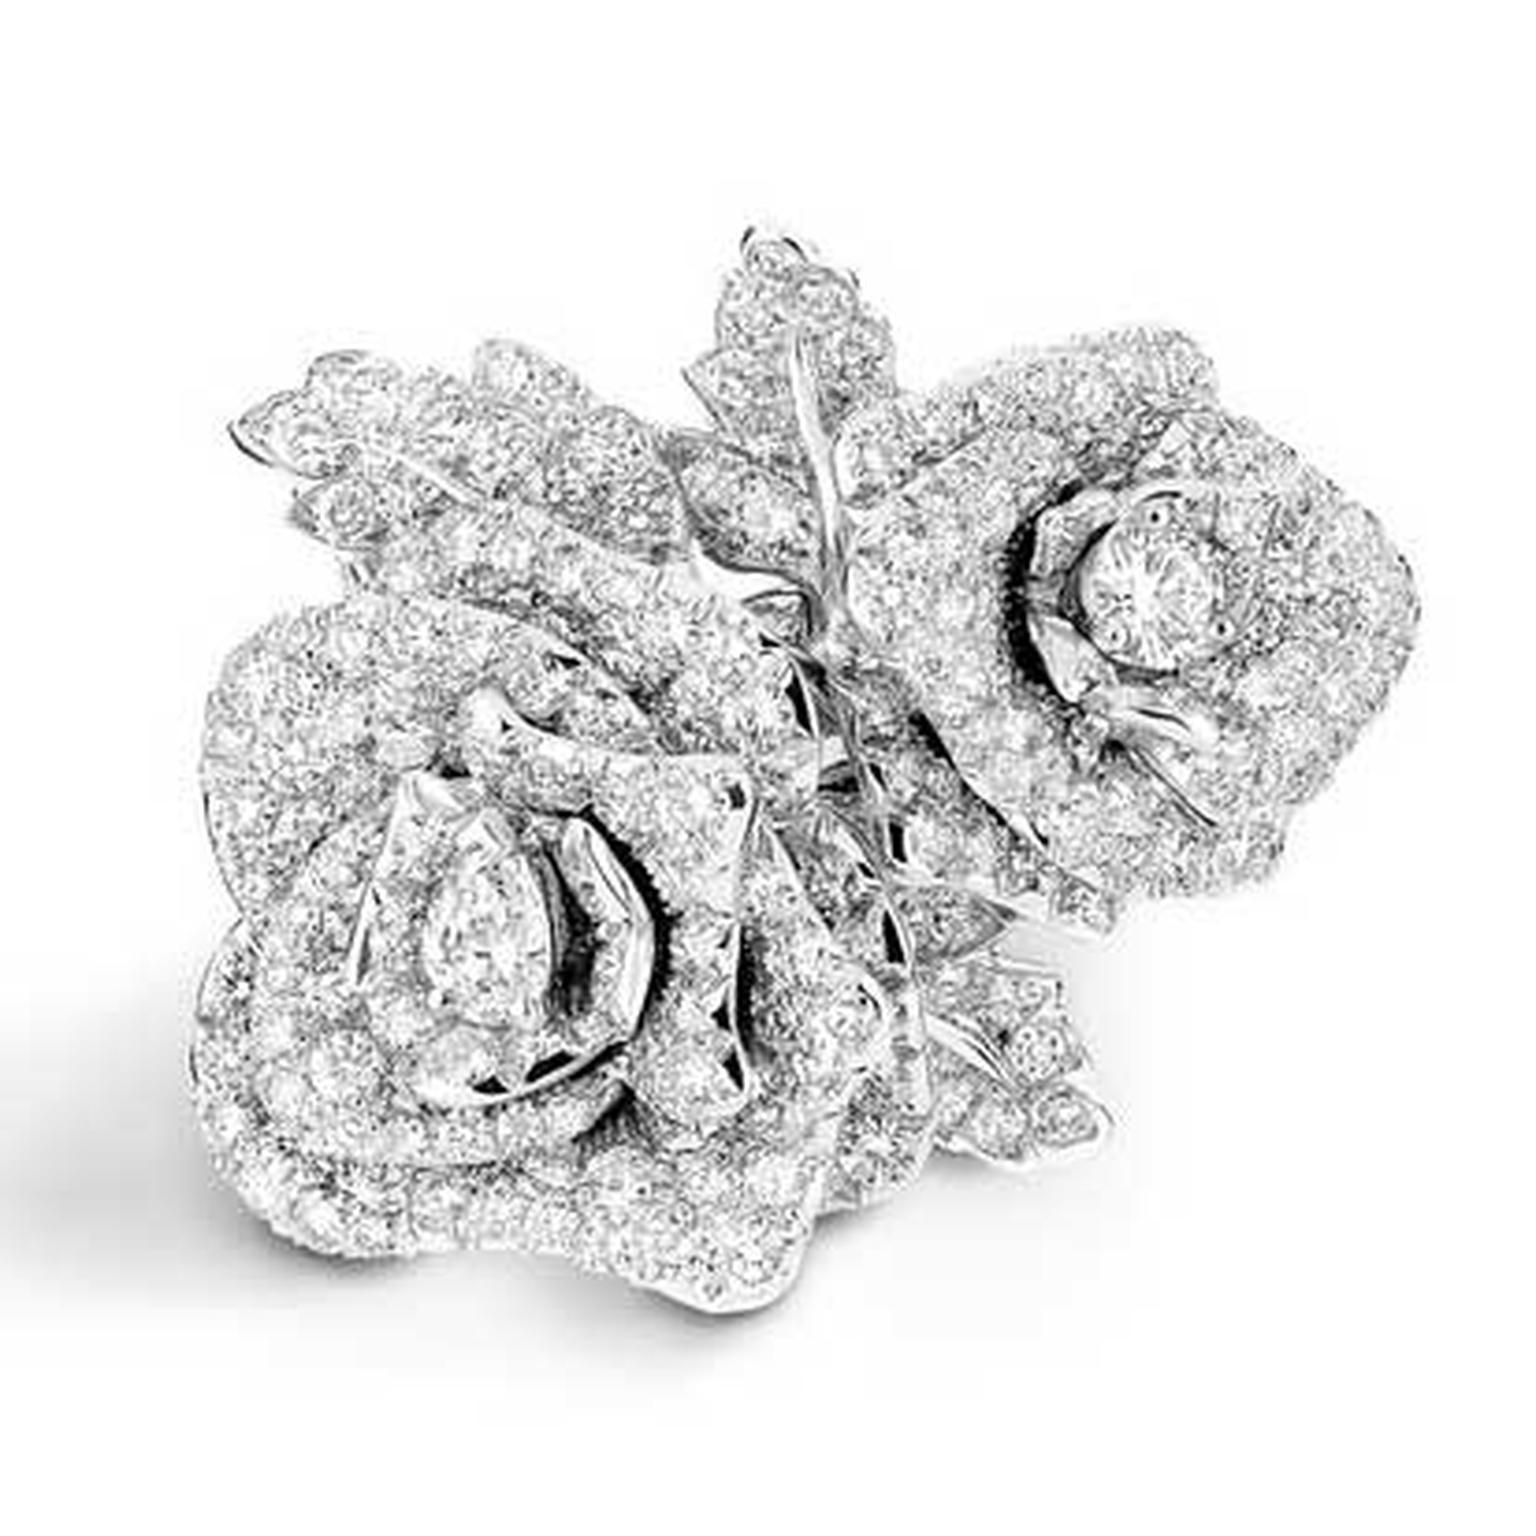 Rose-Dior-Bagatelle-diamond-ring